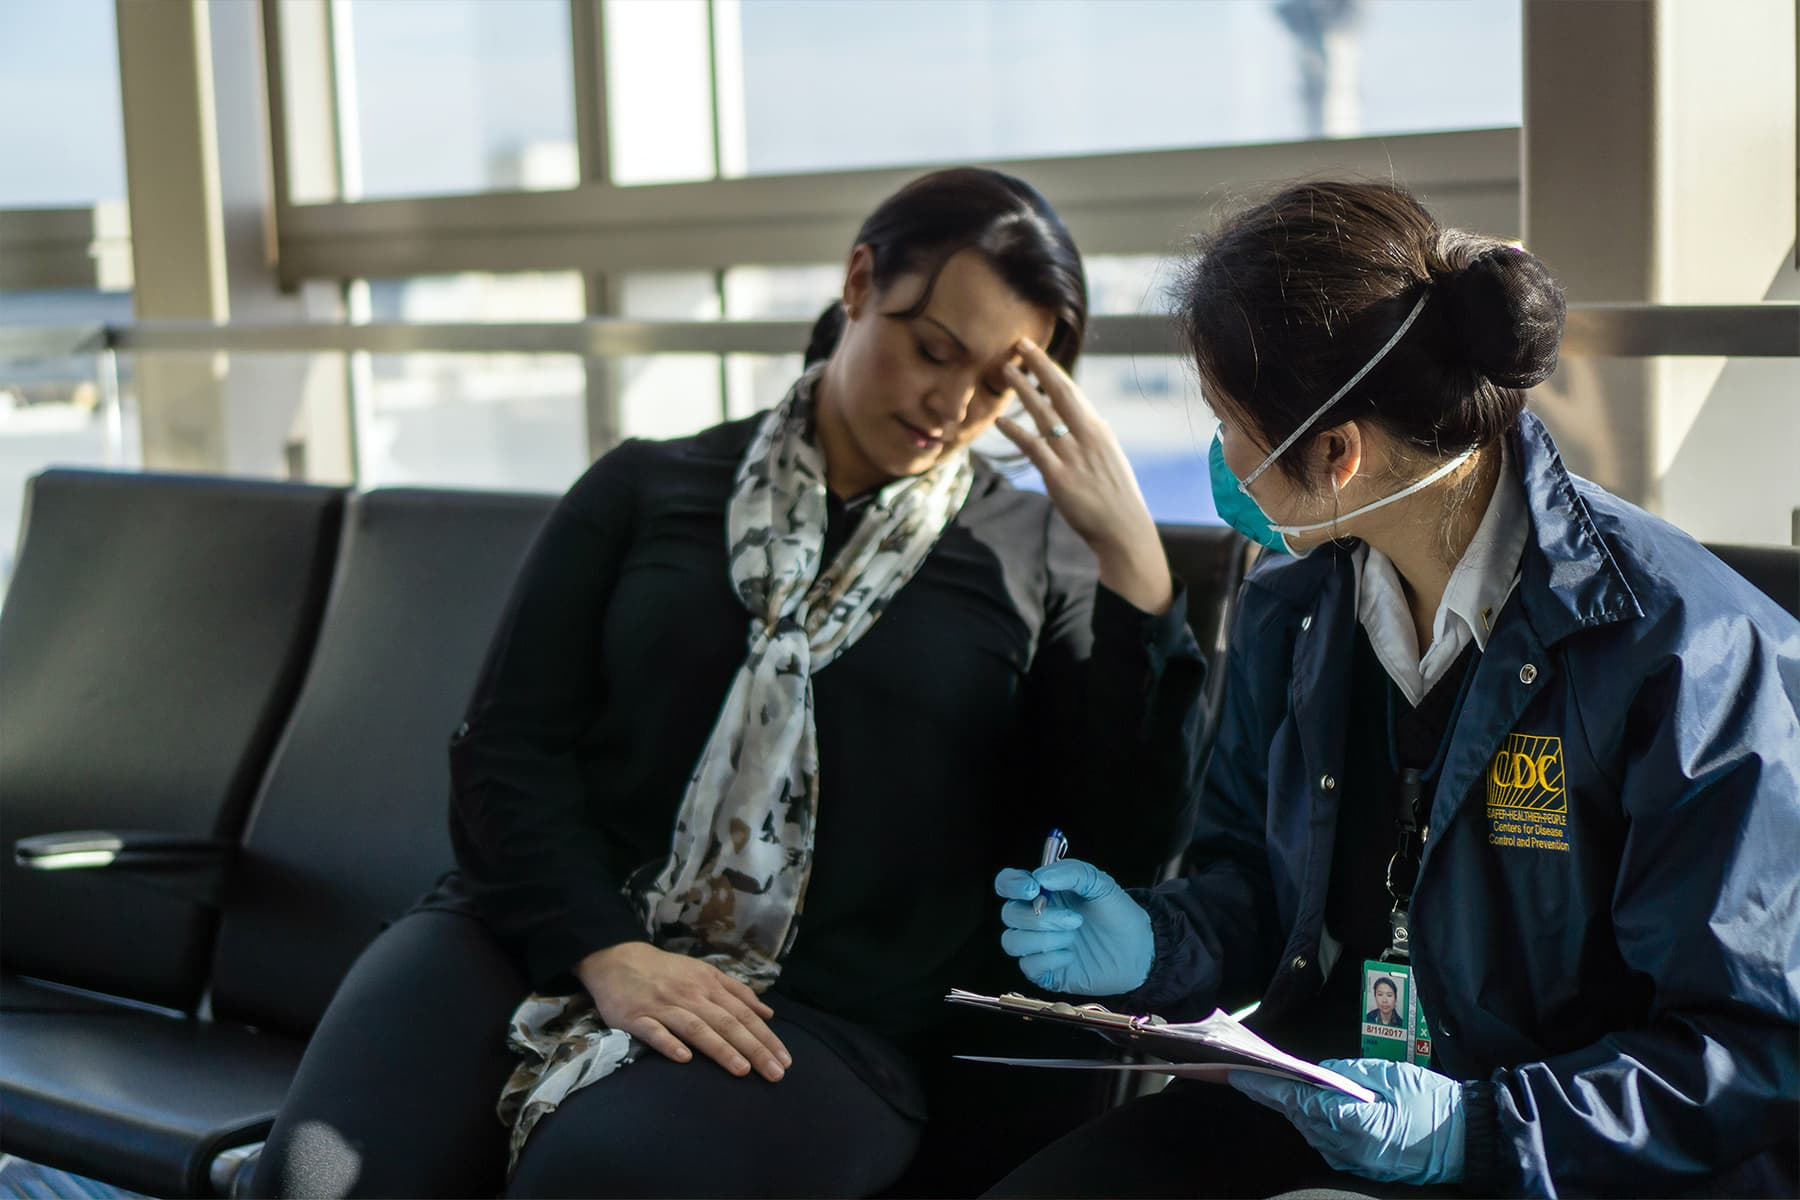 Air Travel a Puzzle in Age of Coronavirus  - web md